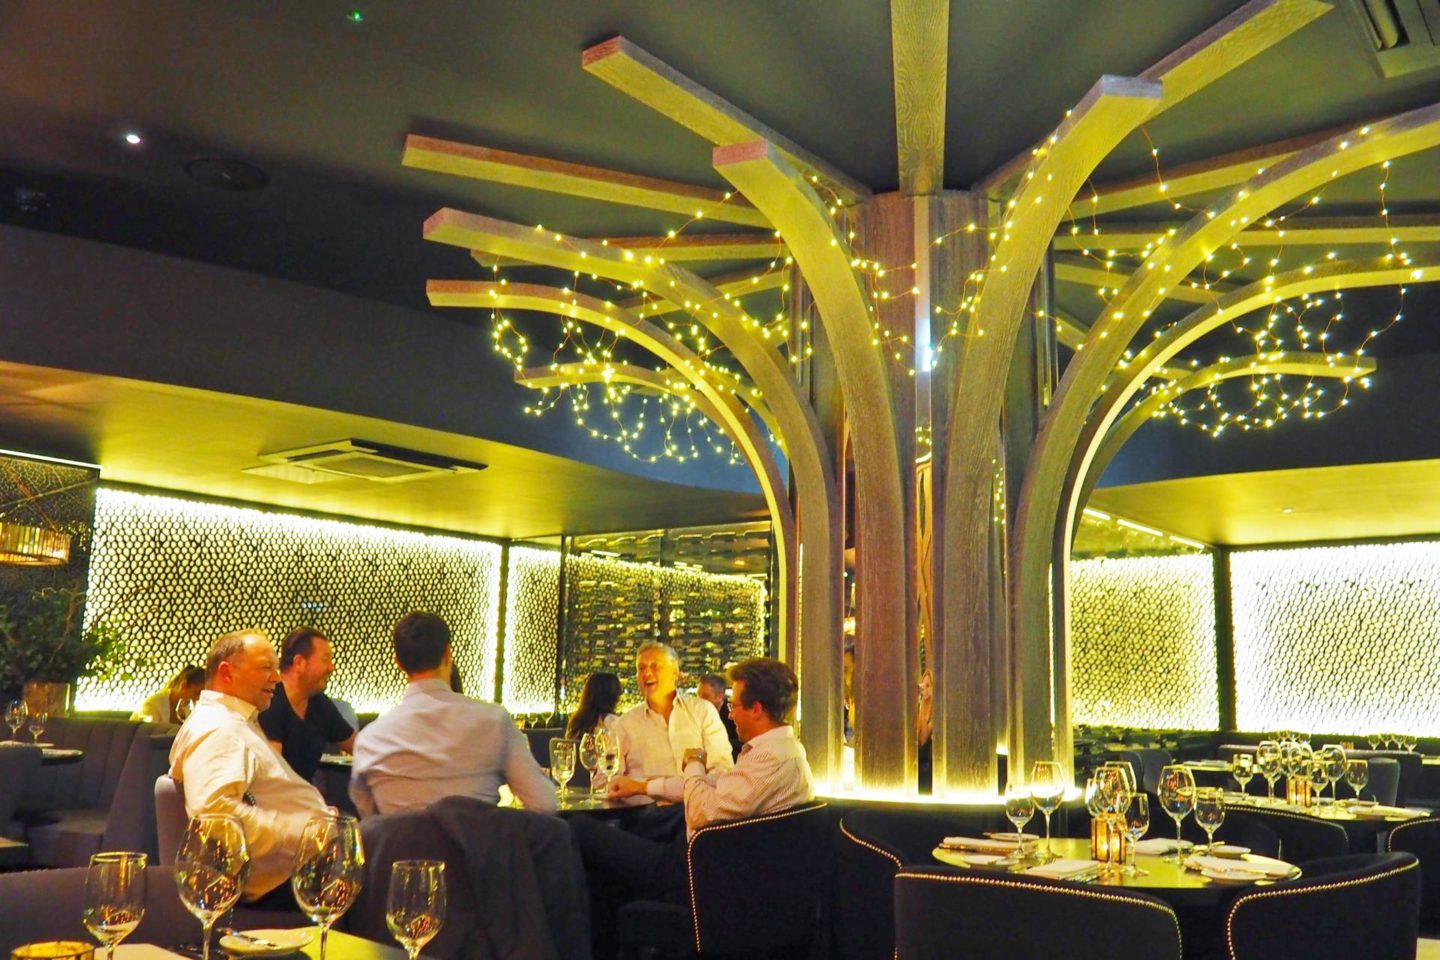 Emma Victoria Stokes Gaucho Birmingham Argentinian Steak Restaurant Tree Lights Interior